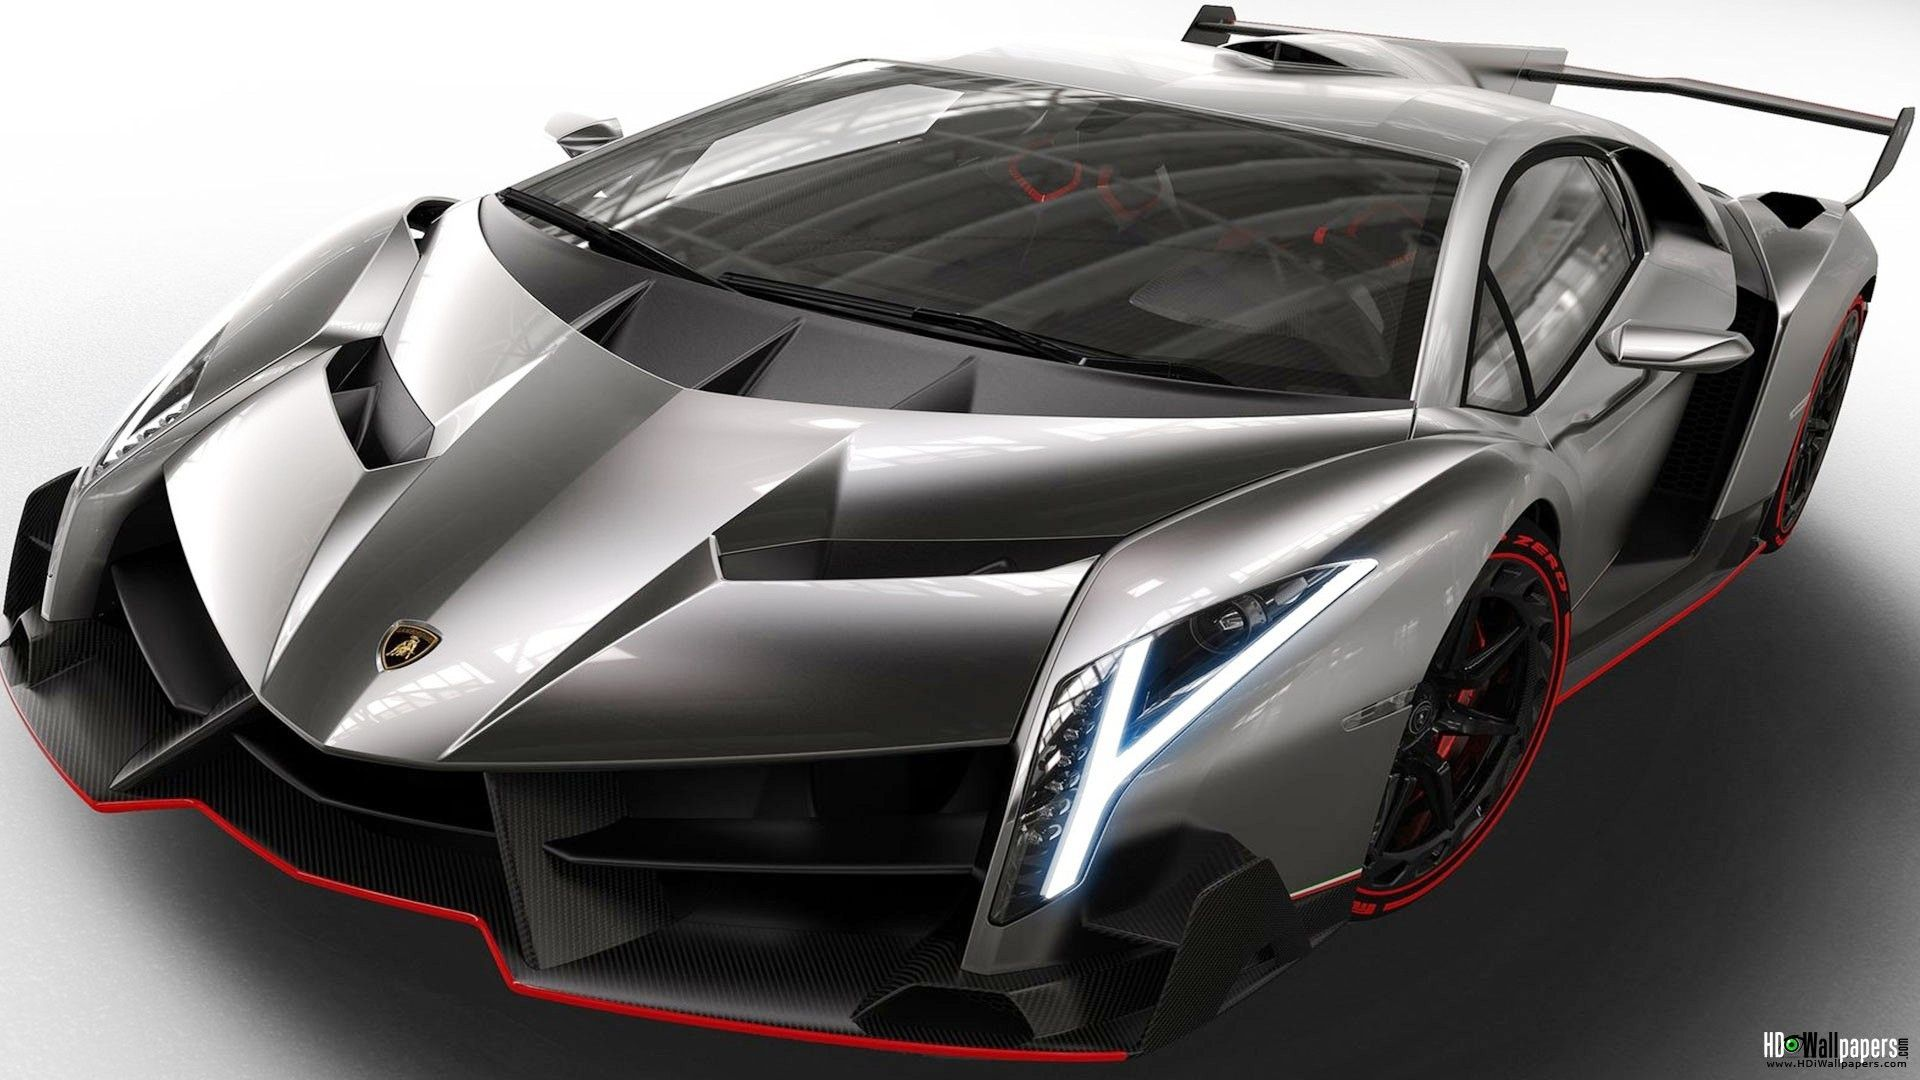 Fastest Car In The World Wallpapers Lamborghini Veneno Lamborghini Cars Lamborghini